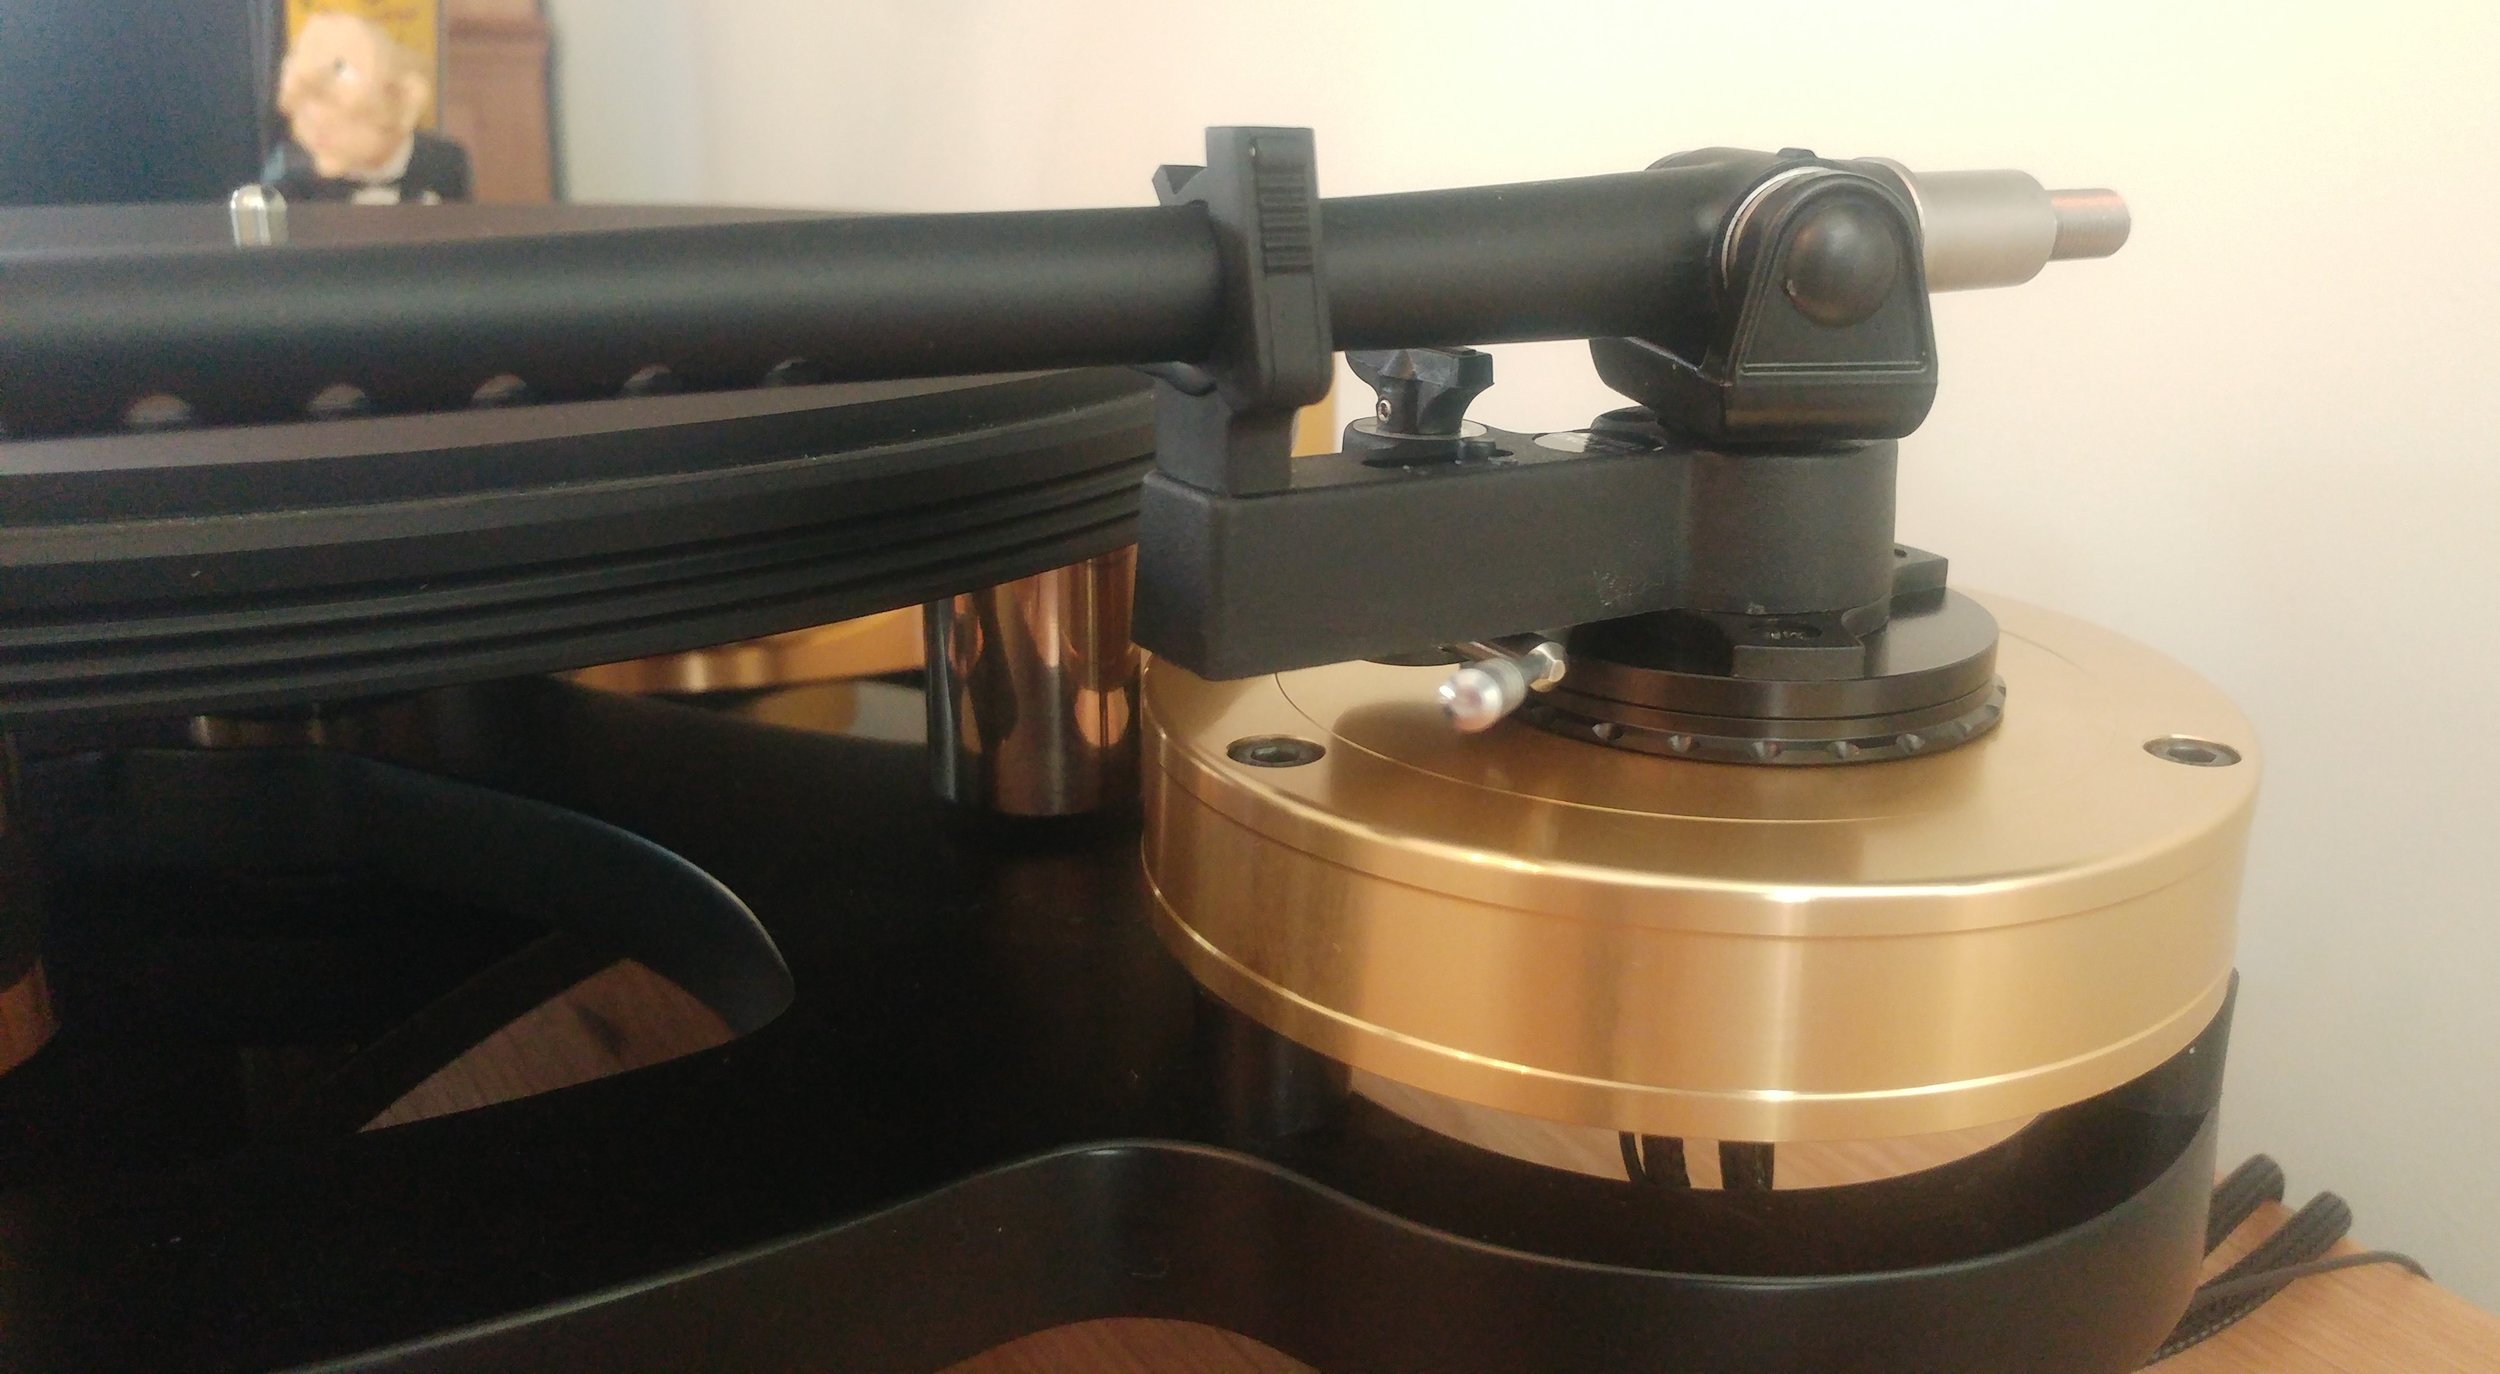 Tonearm height adjustment